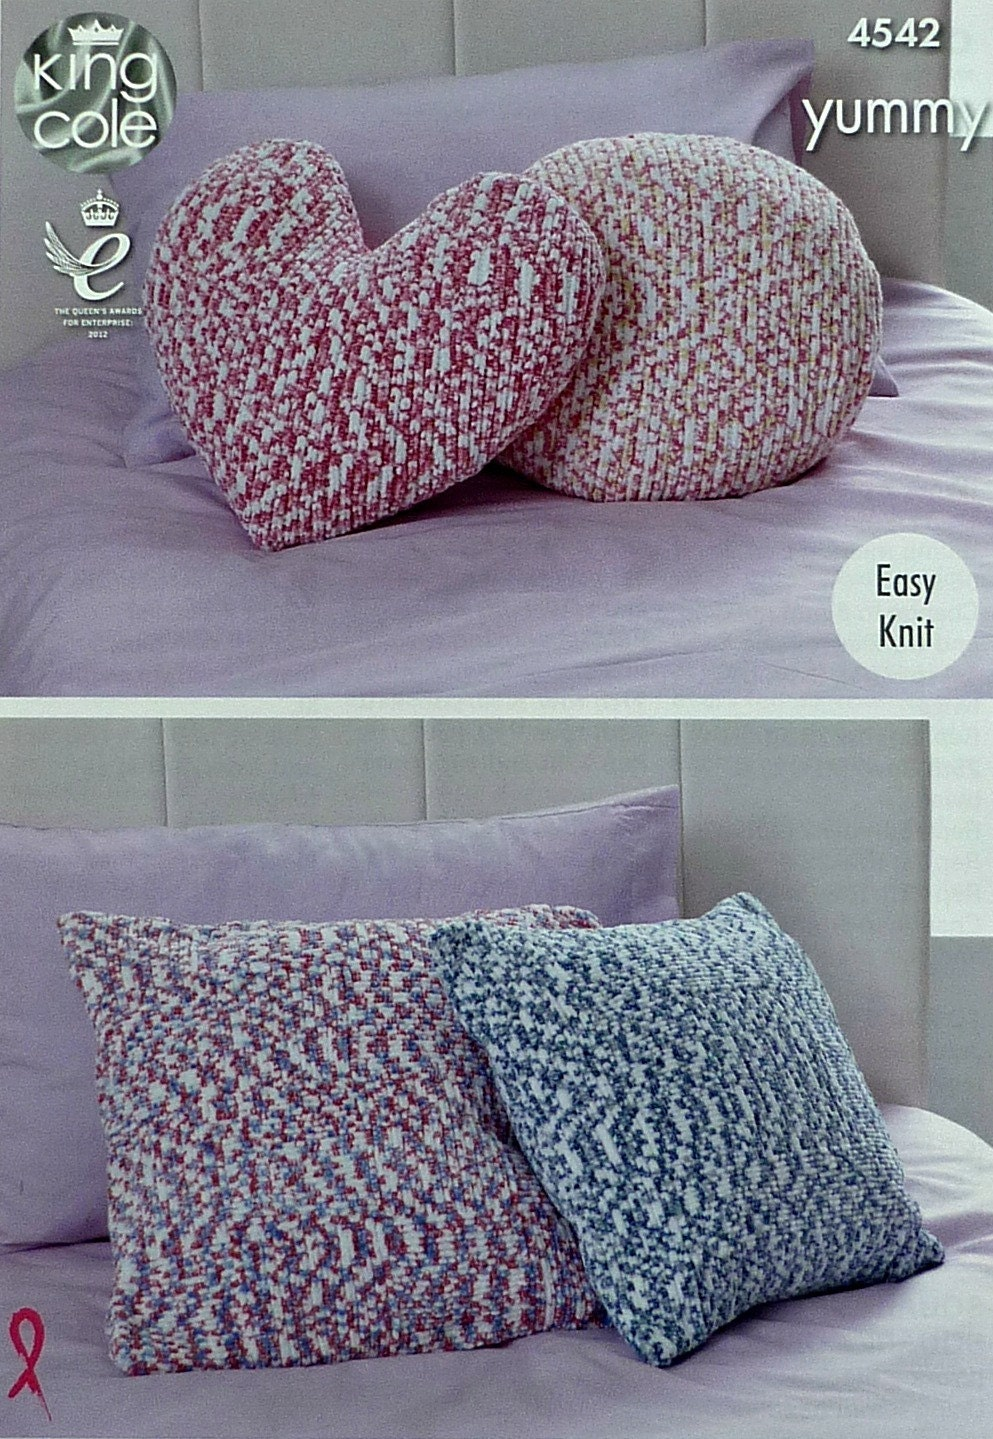 Cushion/Pillow Knitting Pattern K4542 Easy Knit 4 Styles Cushion/Pillow Knitt...